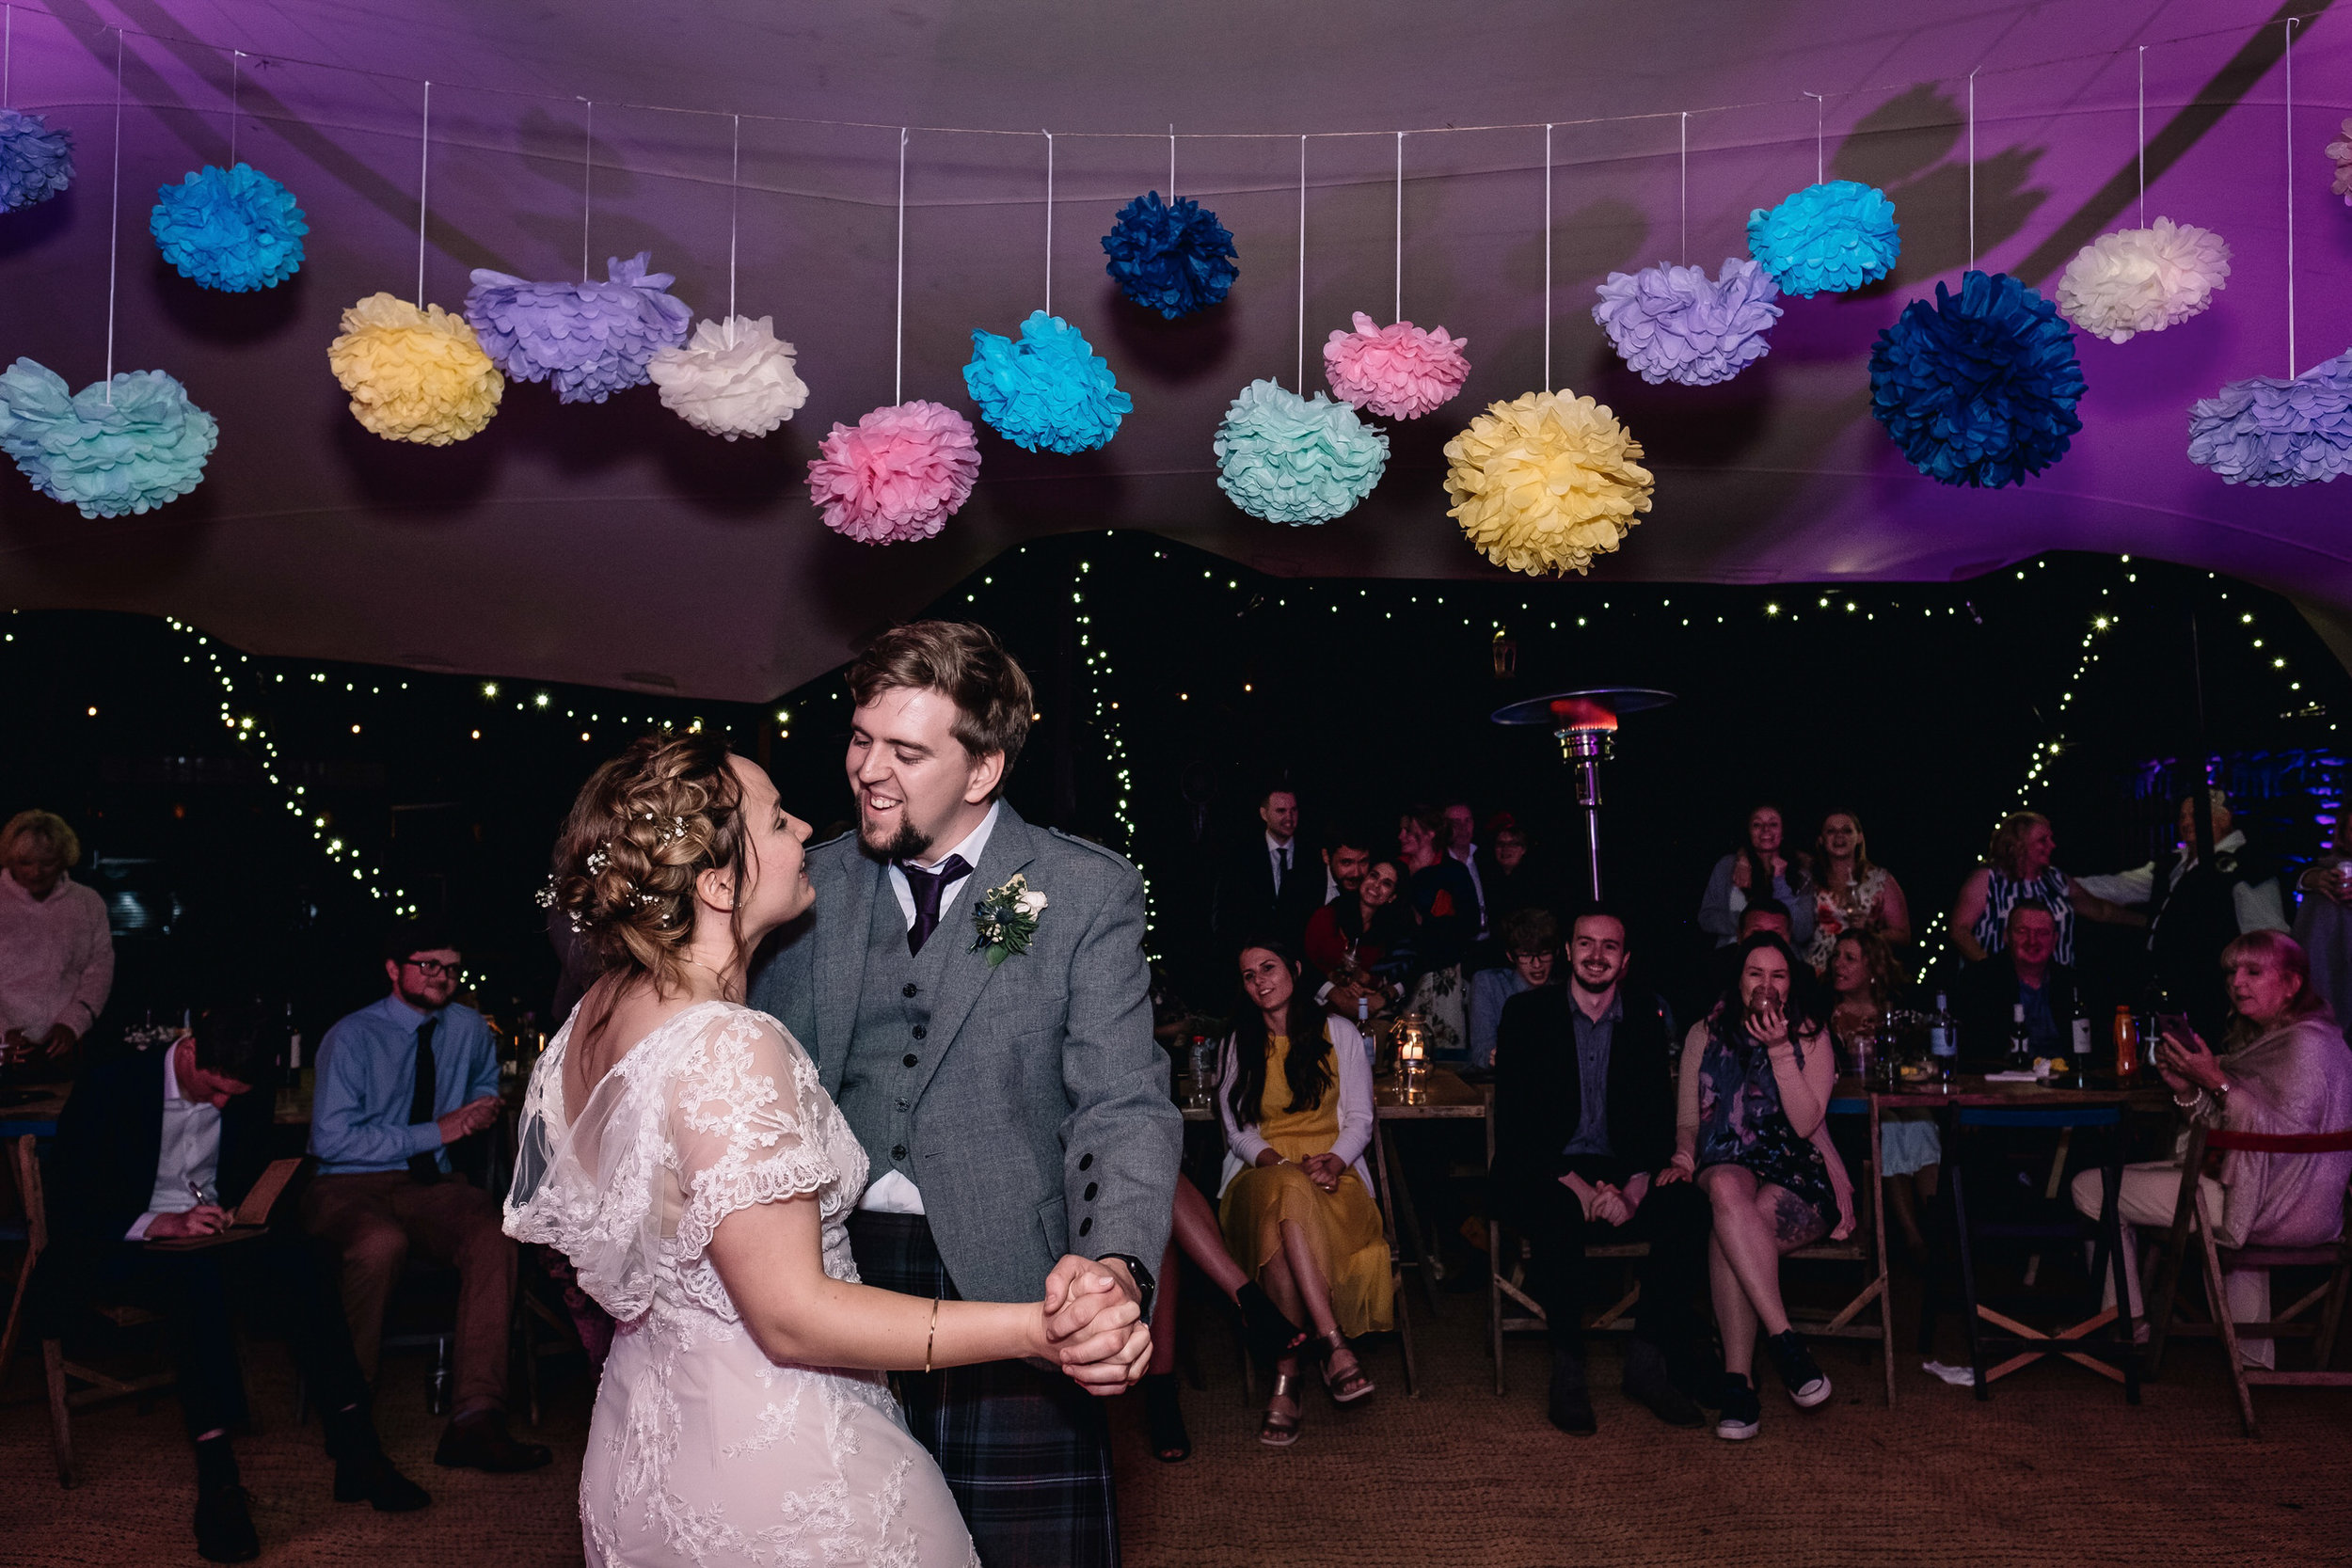 Bride and groom enjoy their first dance.